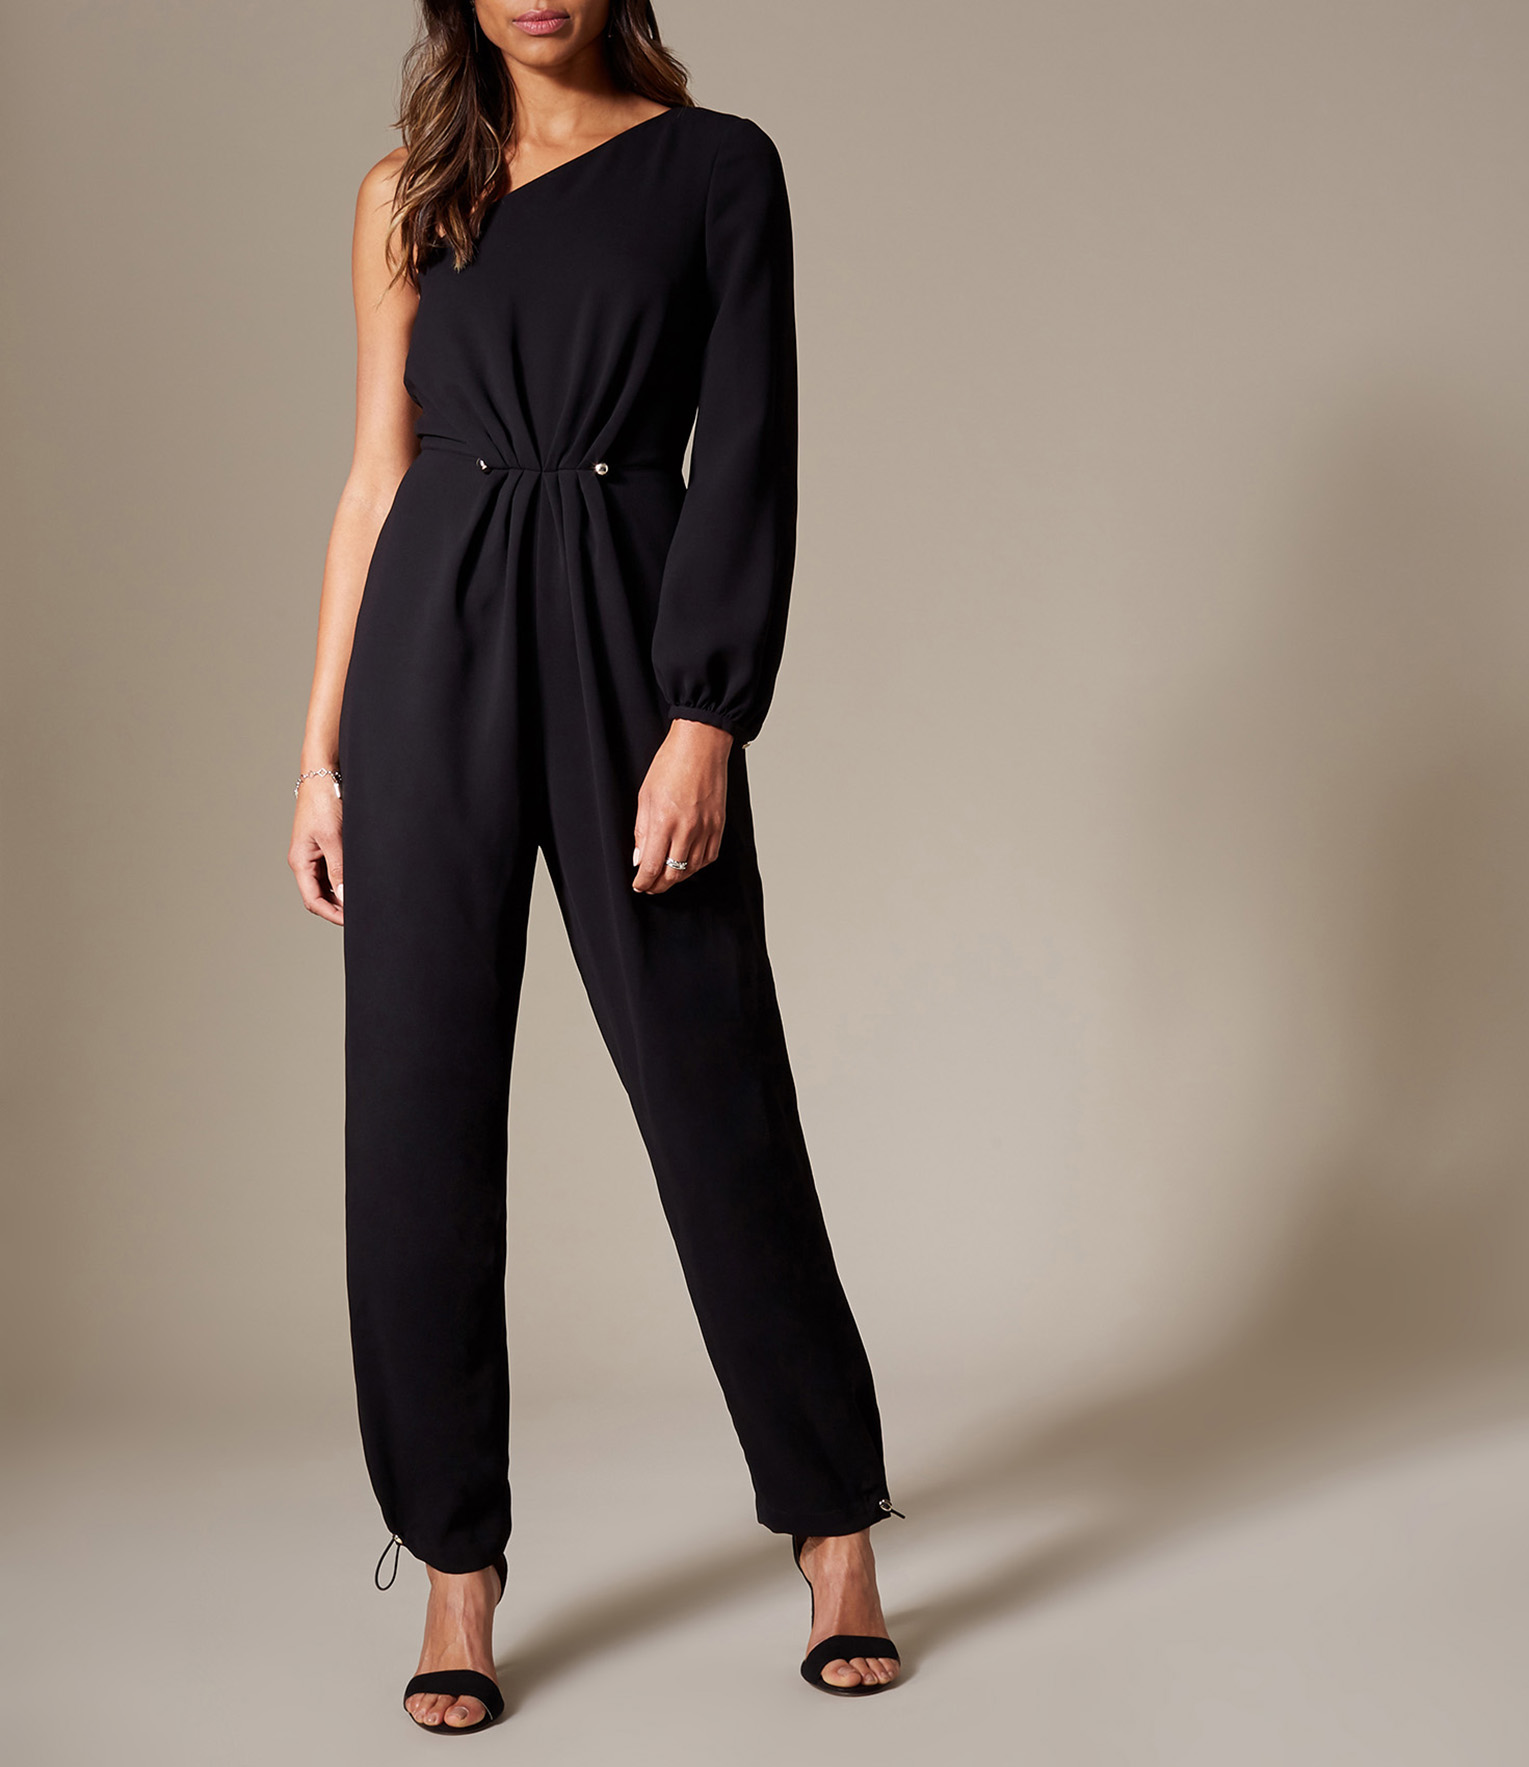 Women's Black One Shoulder Jumpsuit